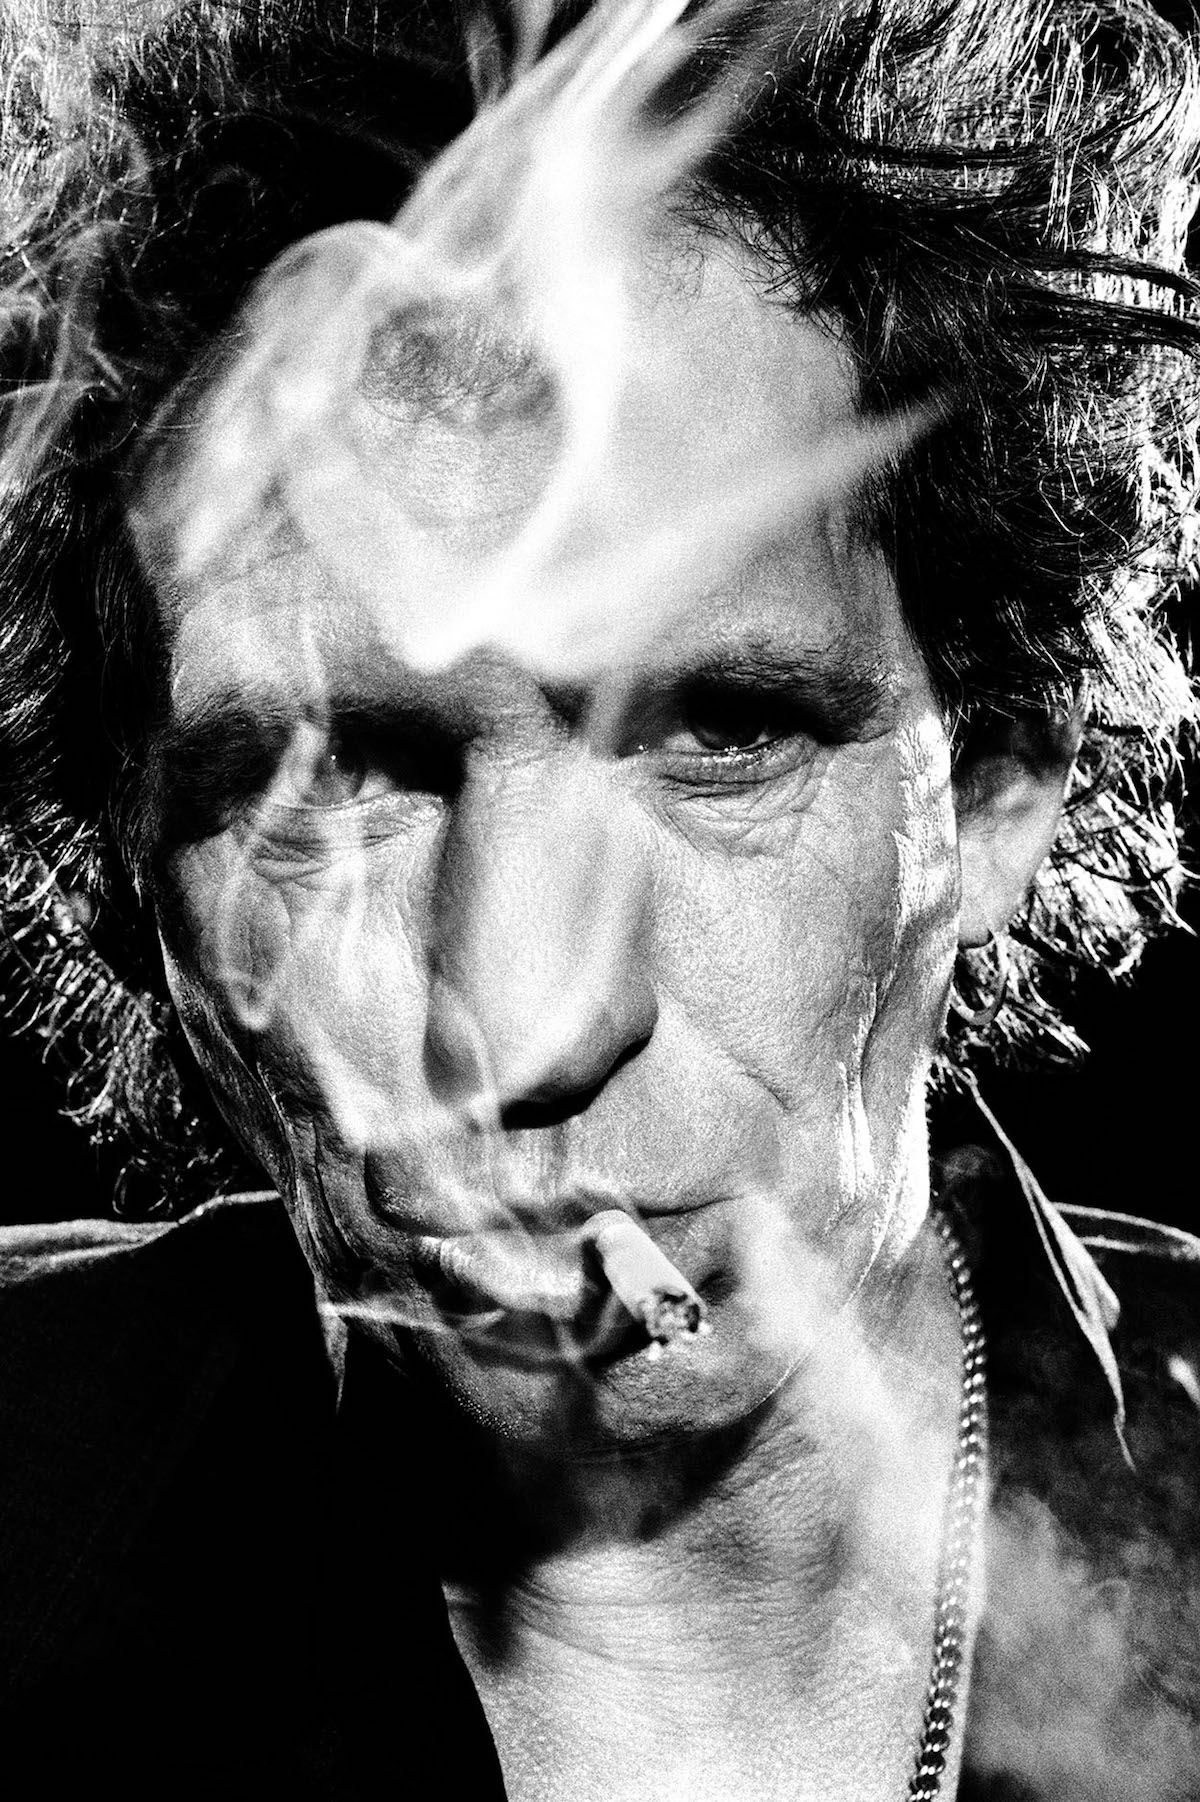 Keith Richards by Stephanie Pfriender Stylander